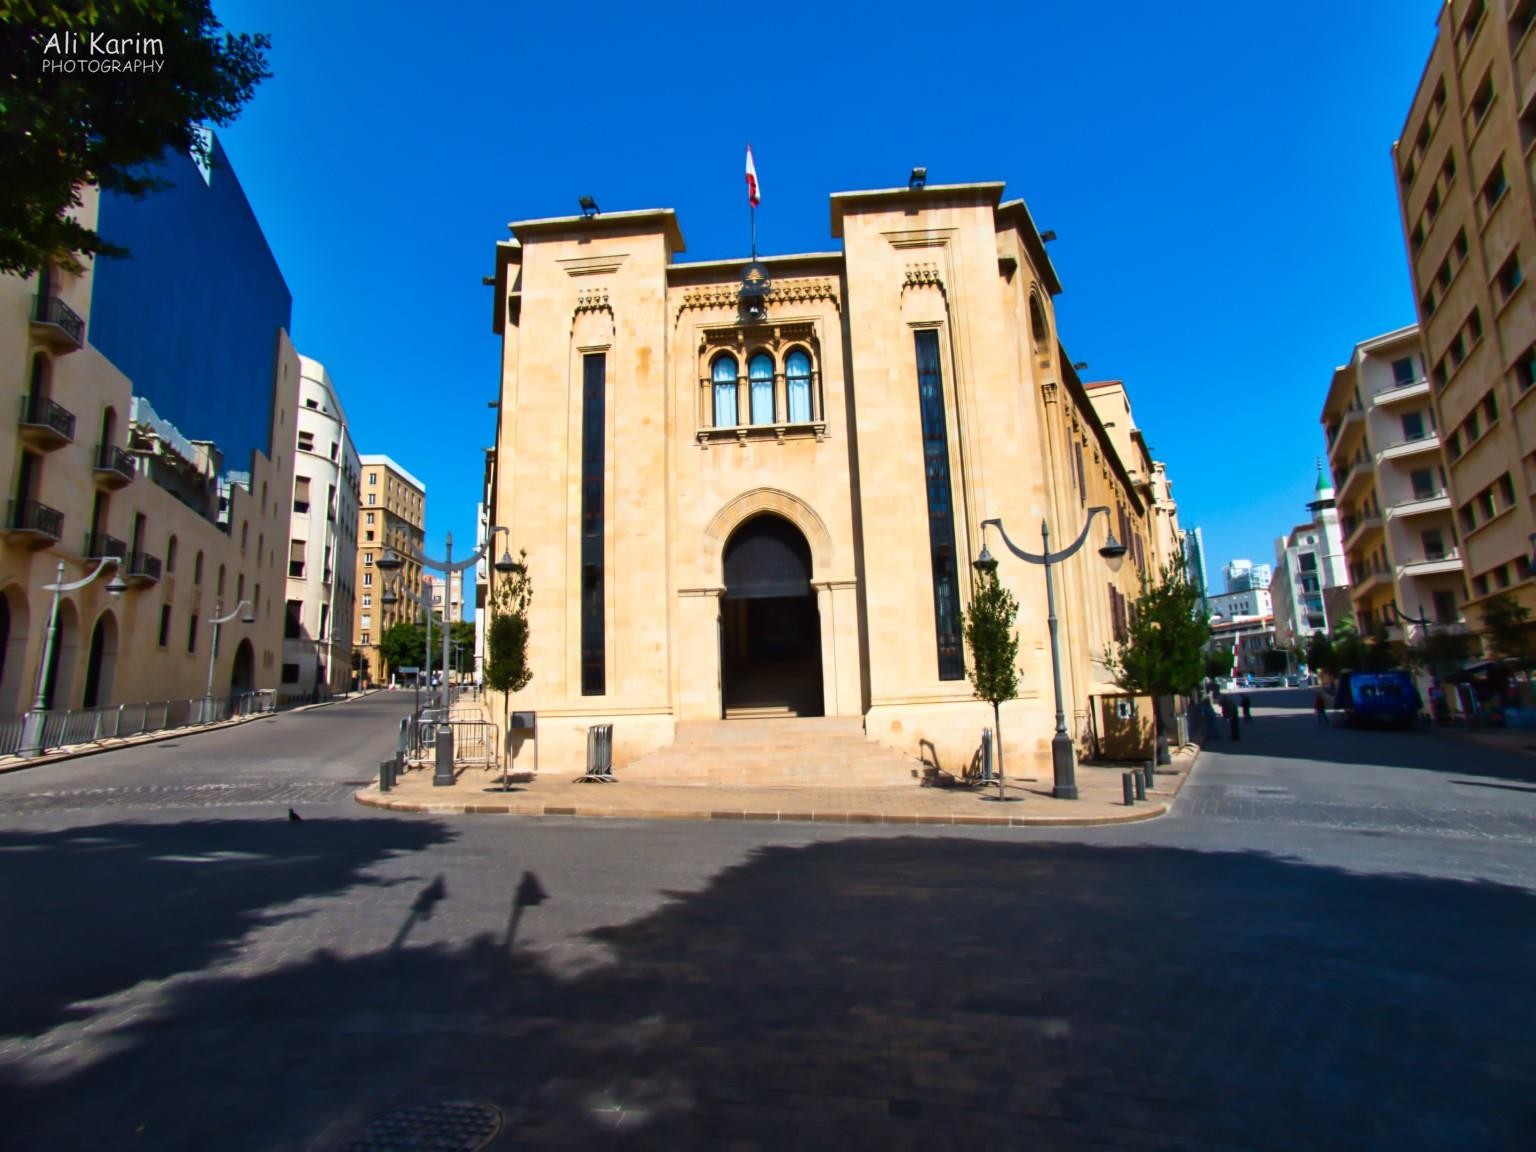 Beirut Lebanese Parliament building in Nijmeh Square; not over guarded